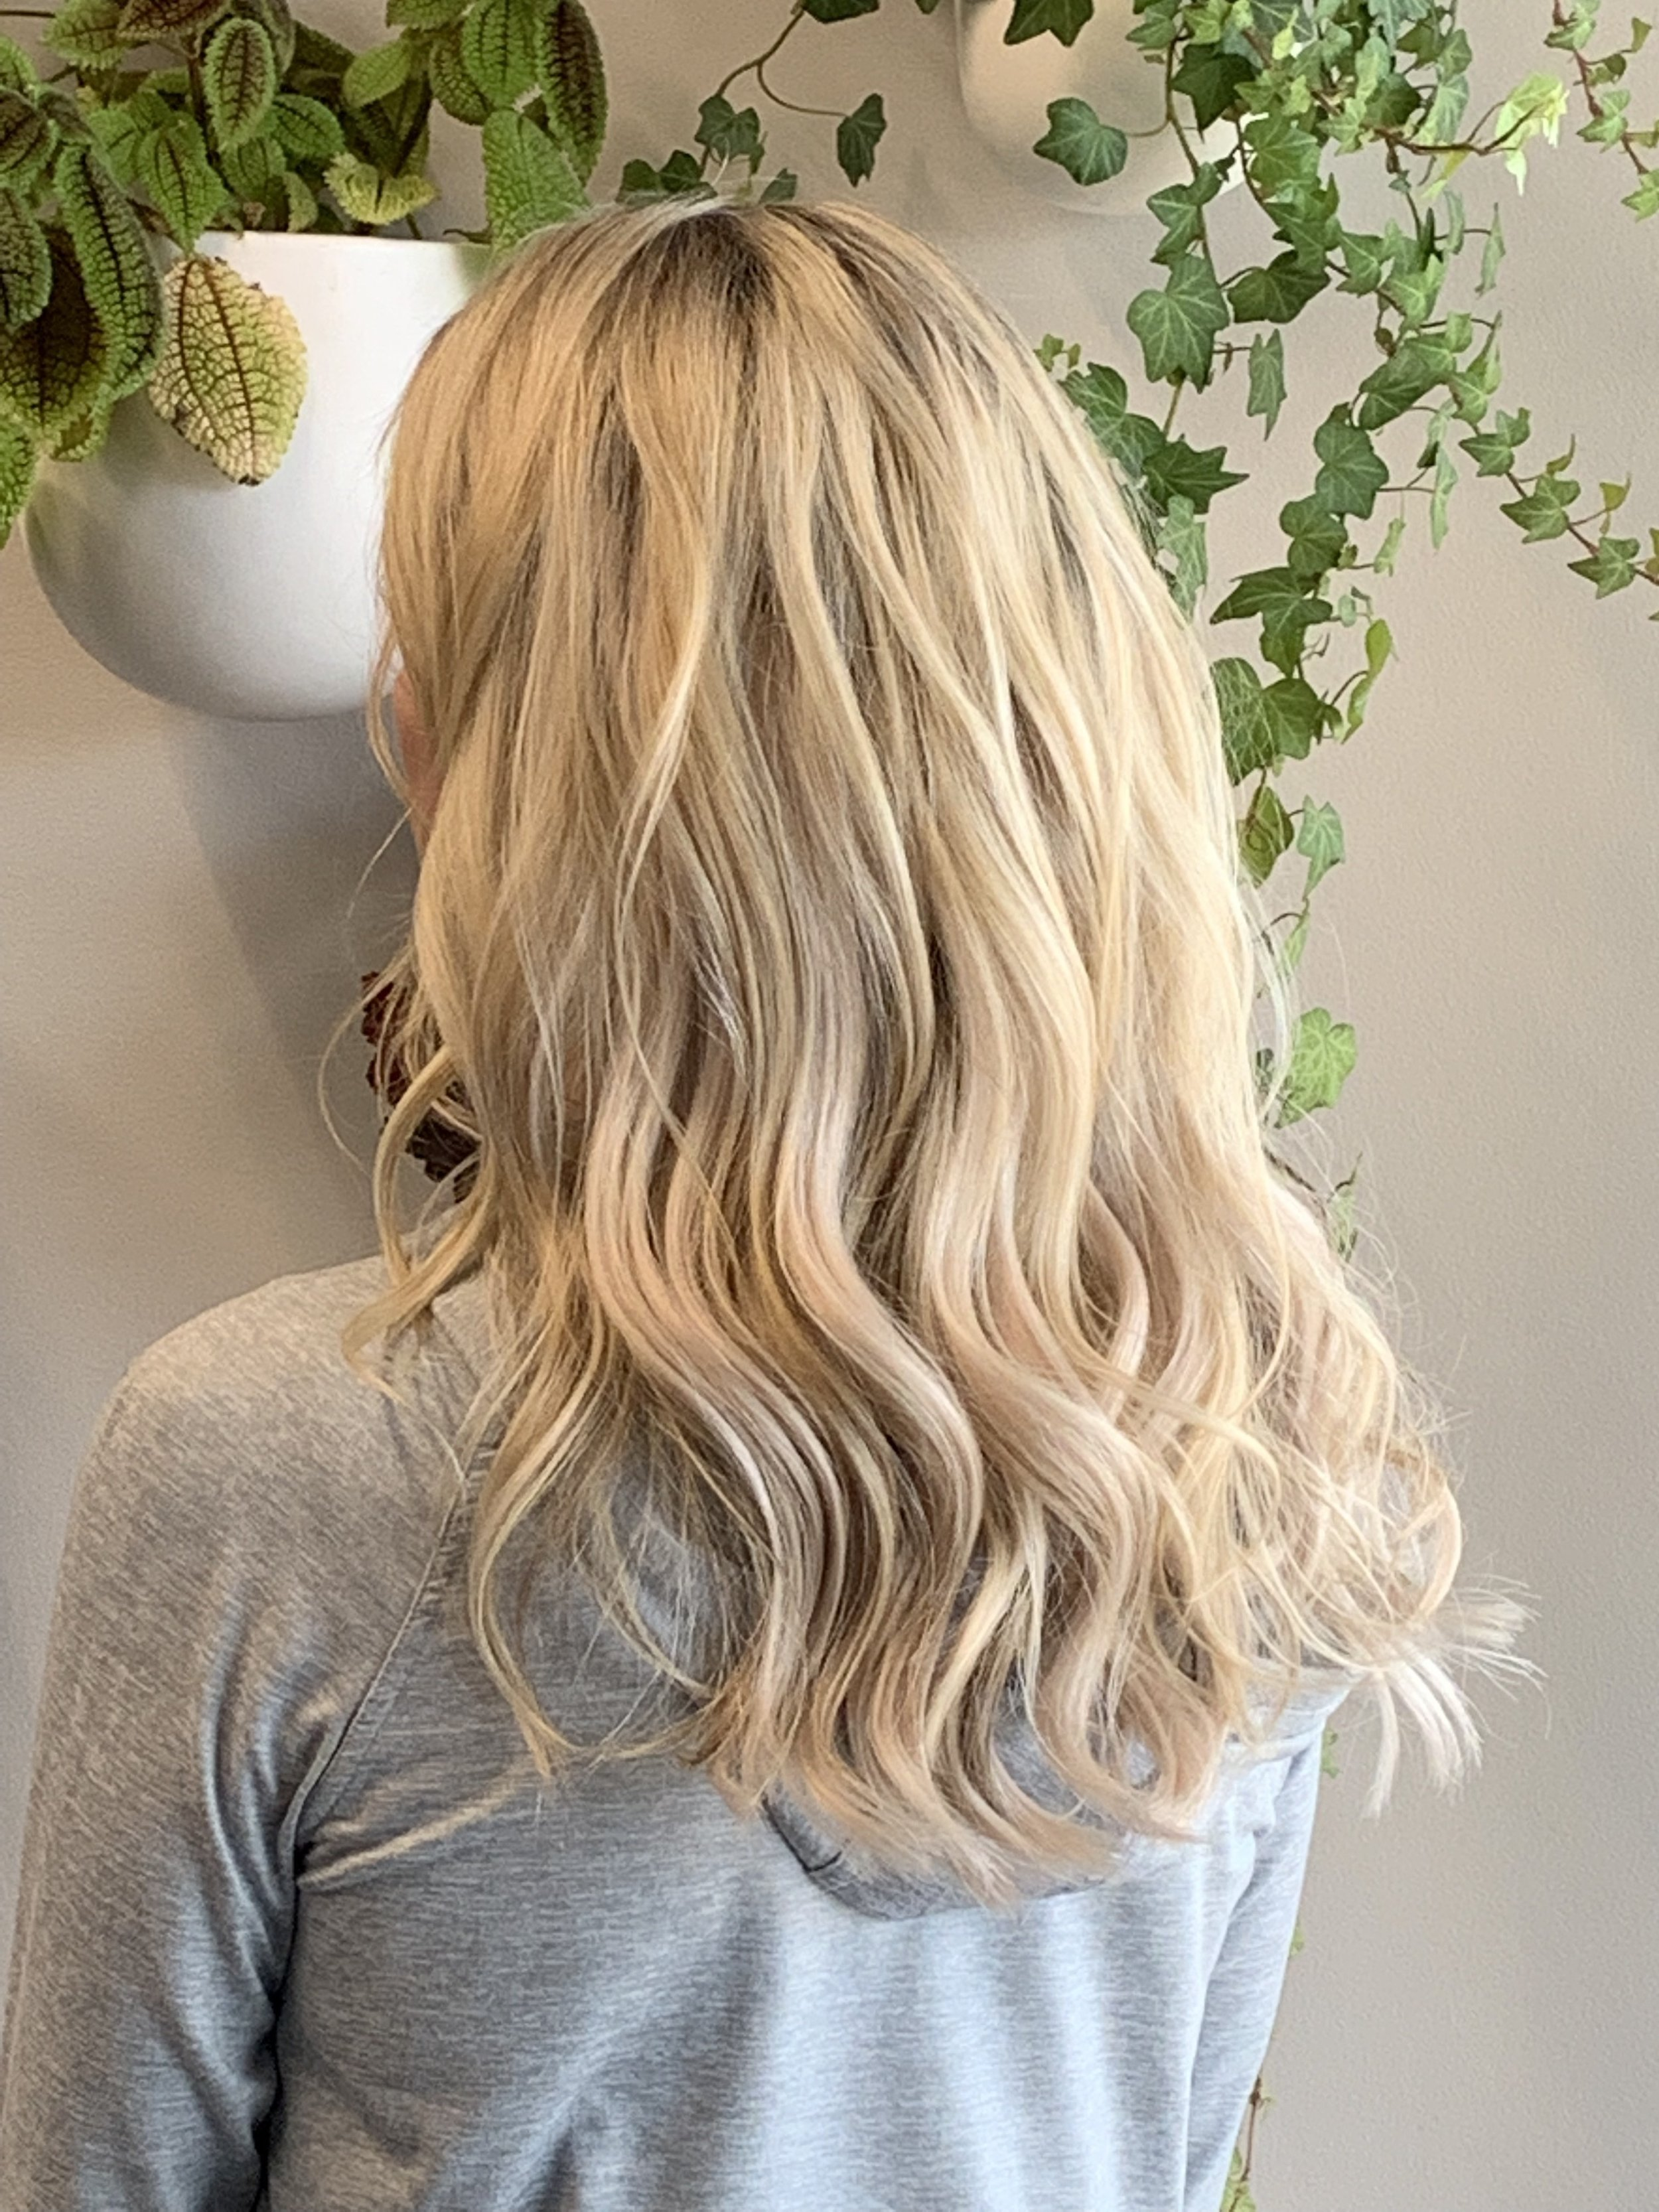 Beaded row hair extensions bohemy salon lake mary florida blonde.jpg